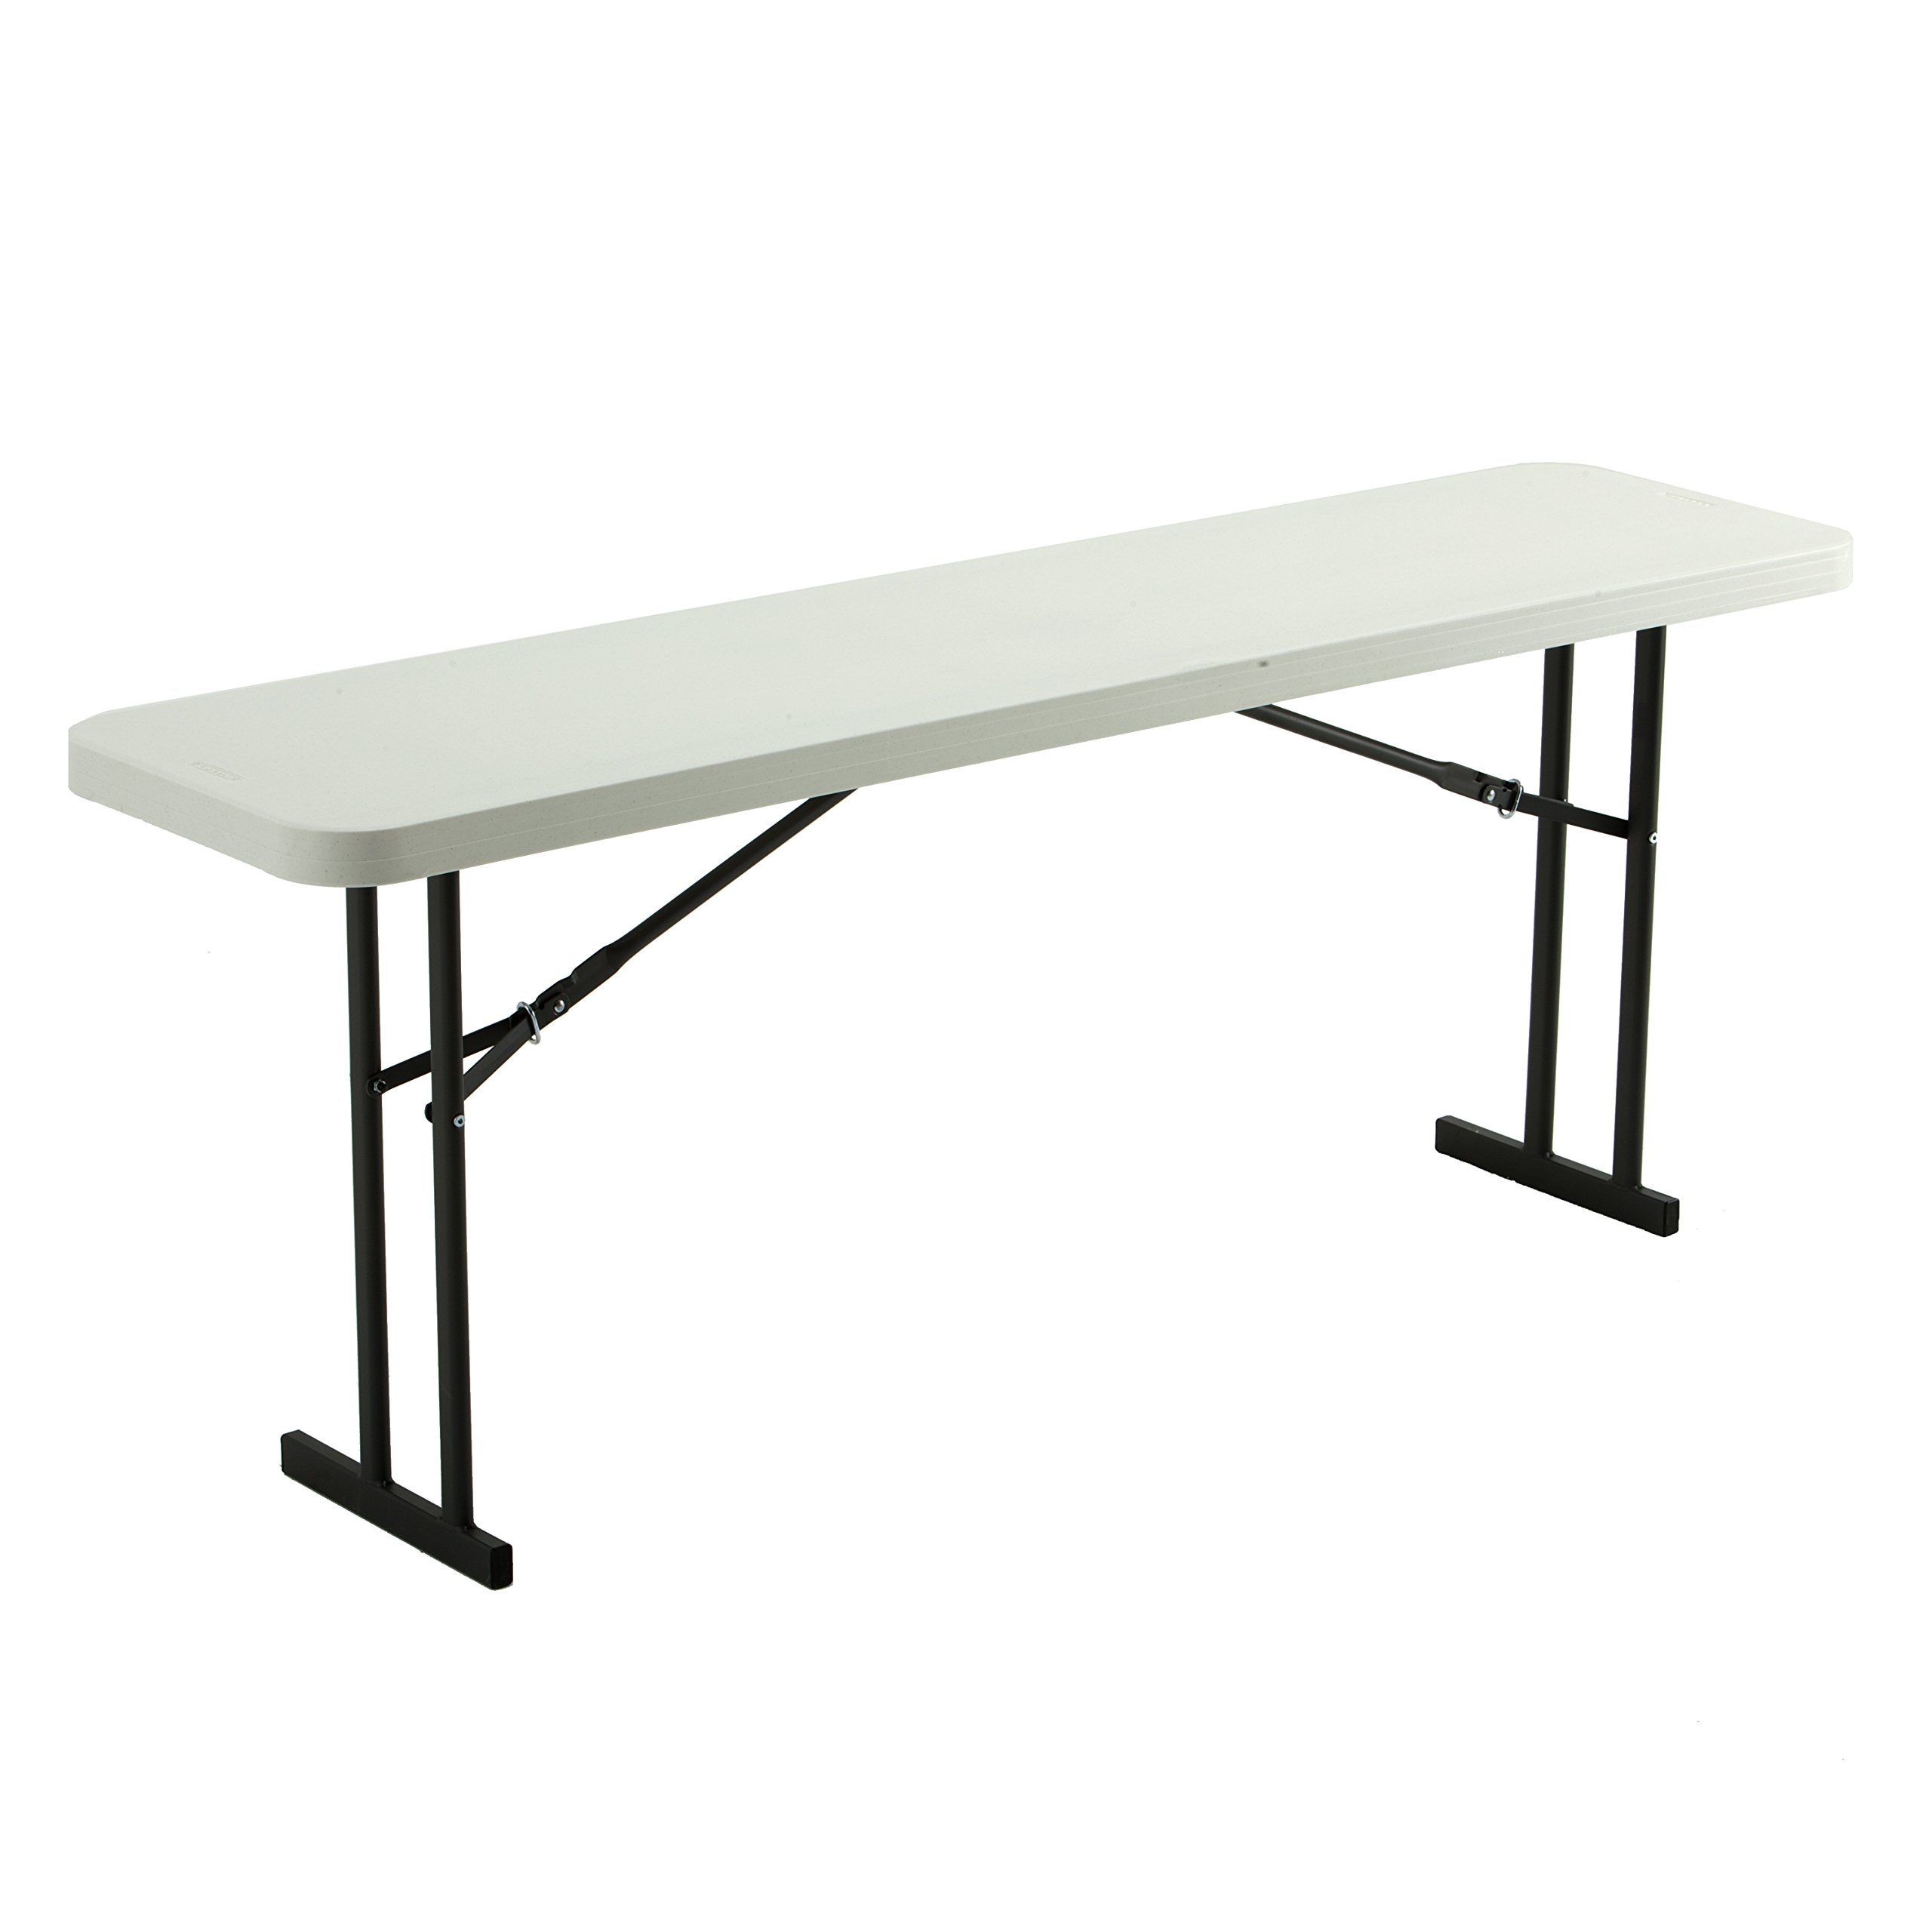 Lifetime 80176 Folding Conference Training Table, 6', White Granite by Lifetime